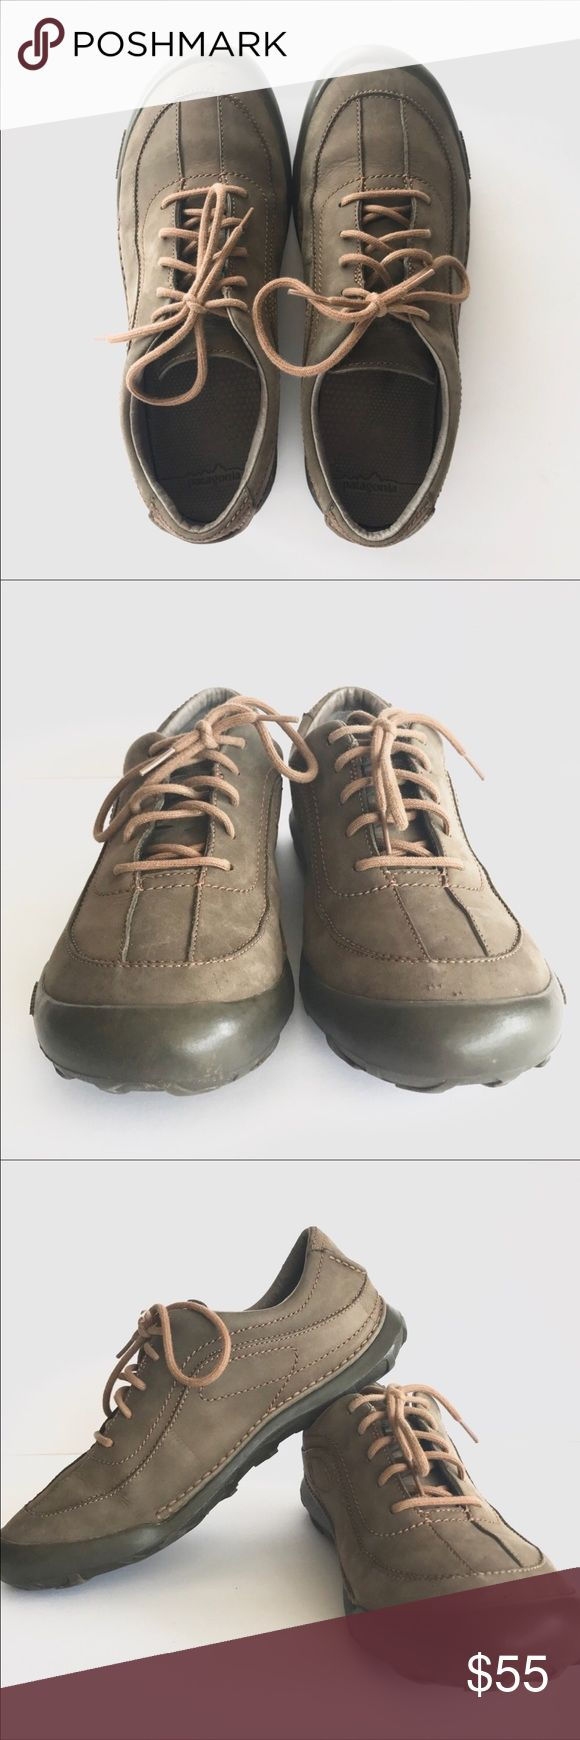 Patagonia Balsam Peak Brown Leather Hiking Shoes Men's Patagonia Balsam Peak Brown Leather Hiking Shoes, Size 9 1/2, brown leather, water resistant oxford style hiking shoe, EUC, has minor wear in front toe as shown in pics, soles are in great shape! These are ready for a new adventure!! SMOKE FREE home. Patagonia Shoes Sneakers